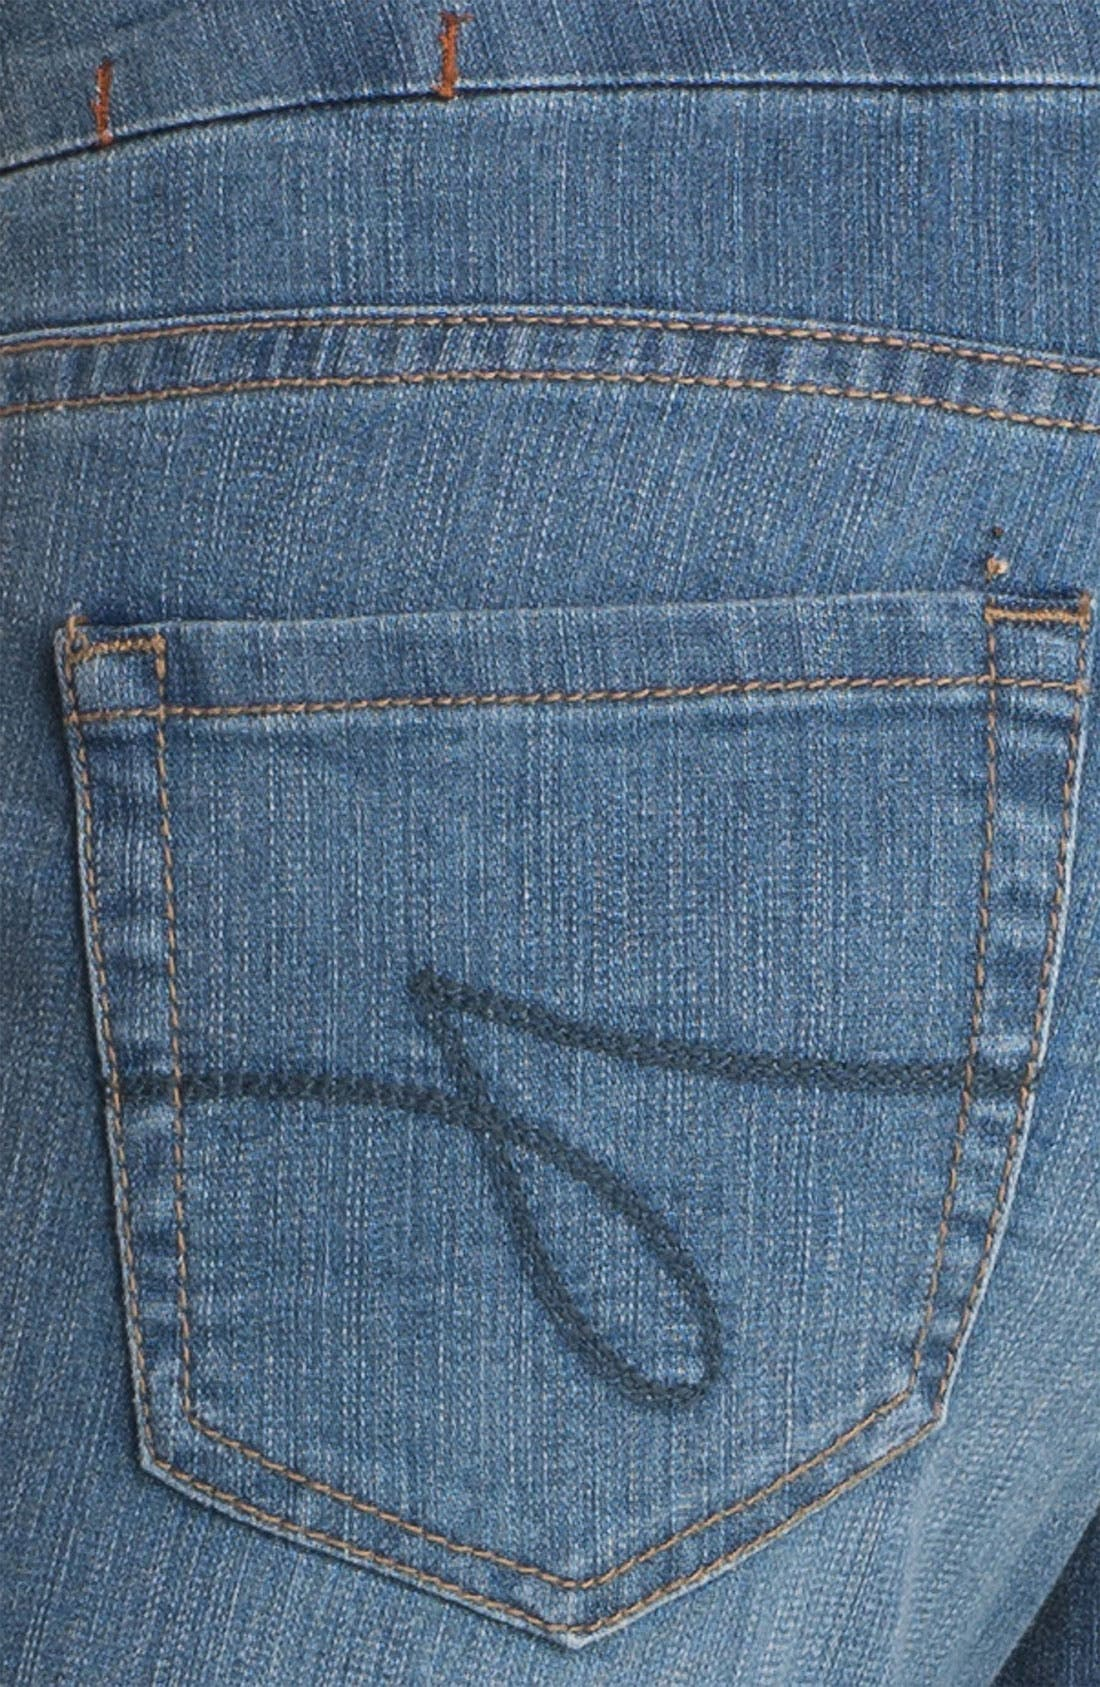 Alternate Image 2  - Jag Jeans 'Paley' Pull-On Jeans (Petite)